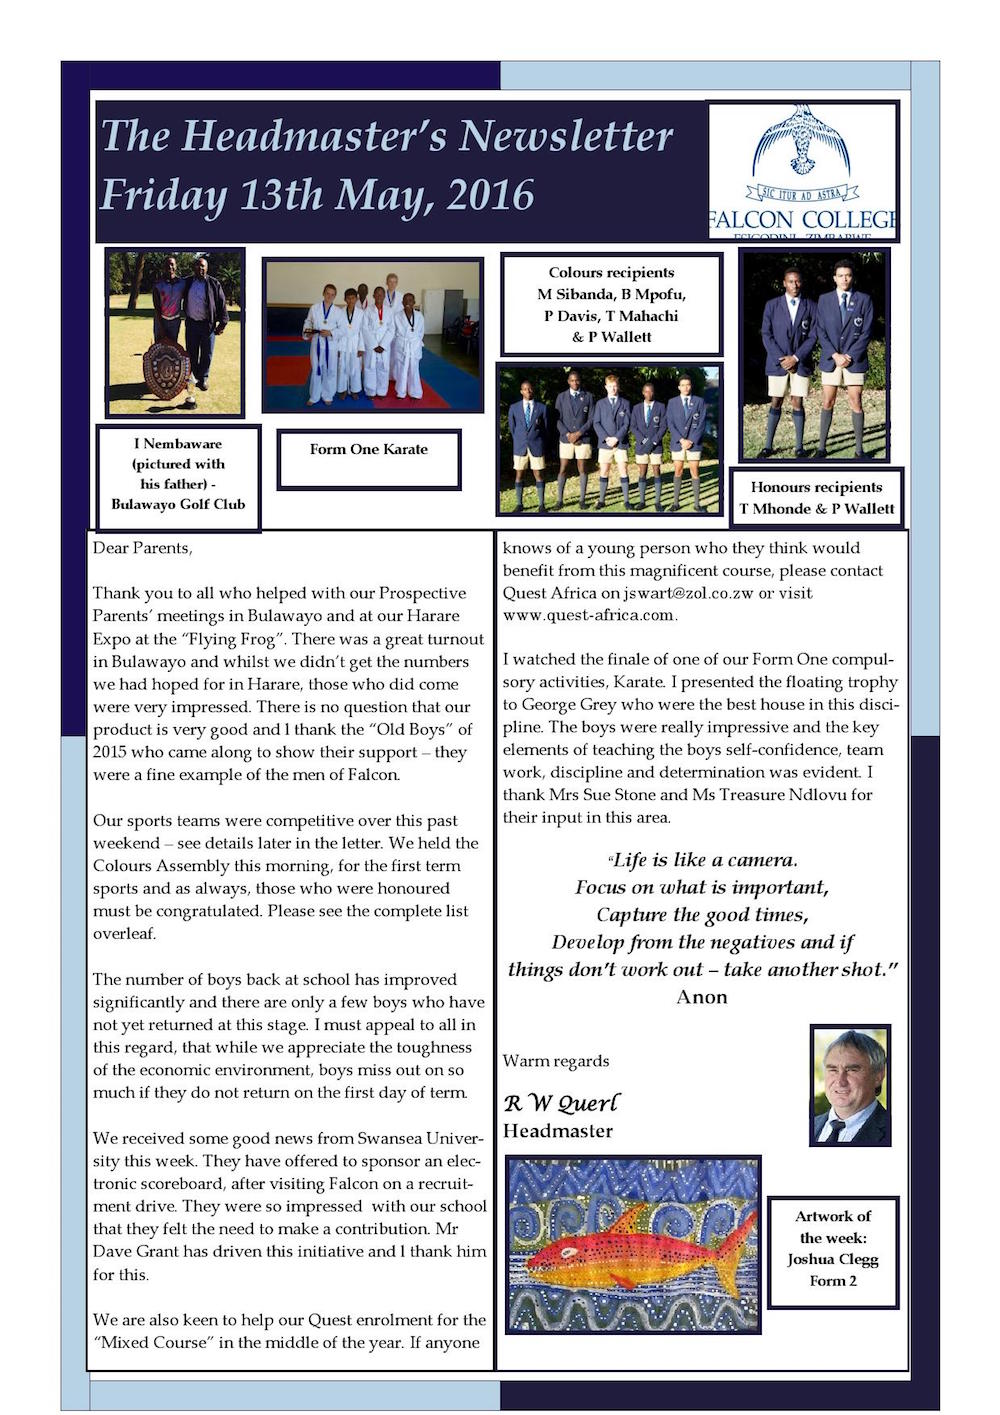 Headmaster's Newsletter Friday 13th May 2016 edited_000001